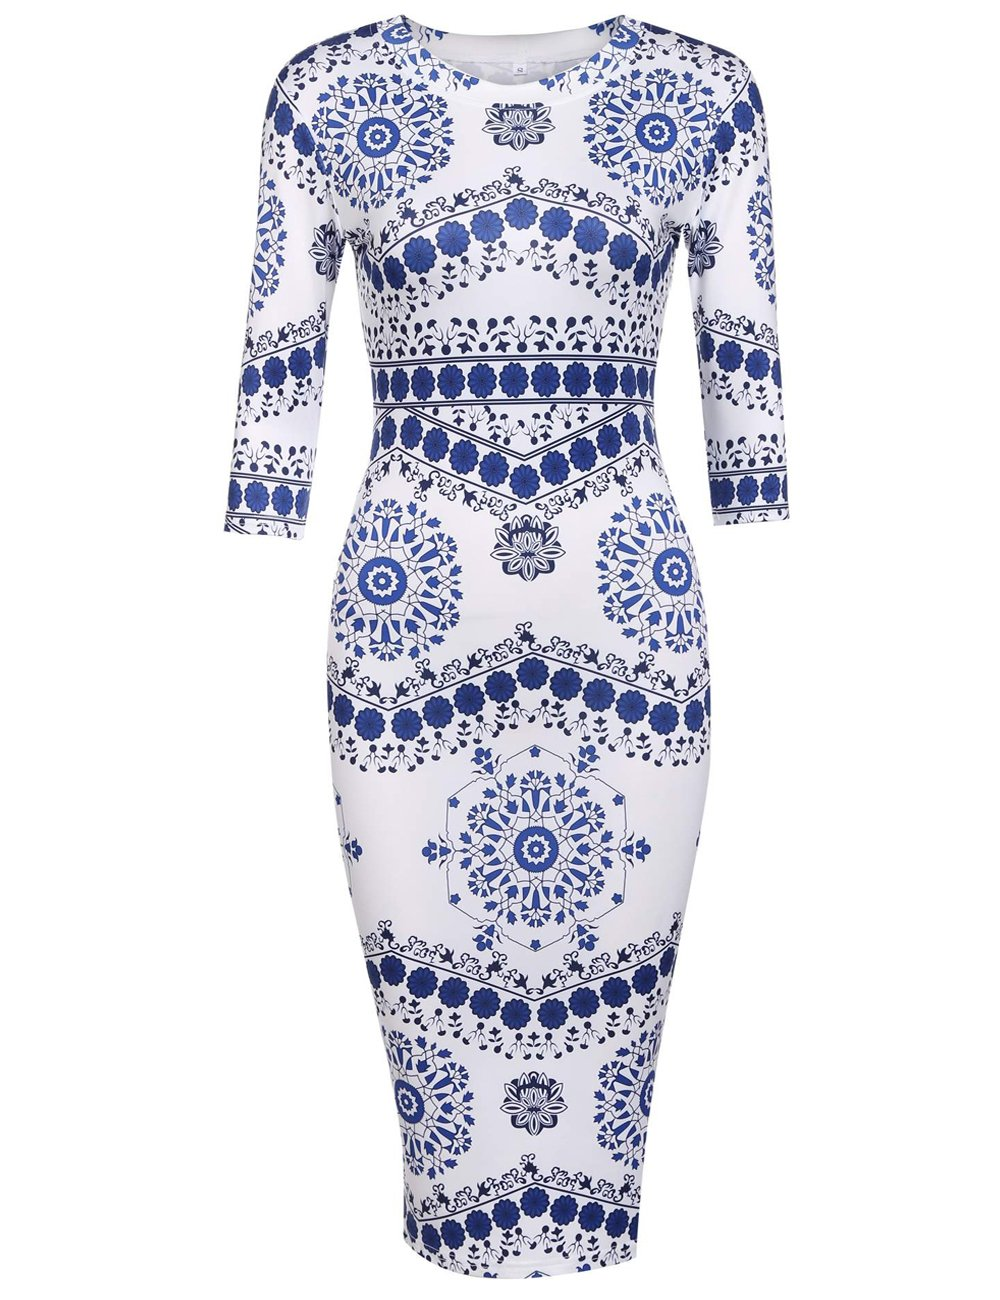 Women 3 4 Sleeve Blue and White Porcelain Floral Print Midi Pencil Dress for Work